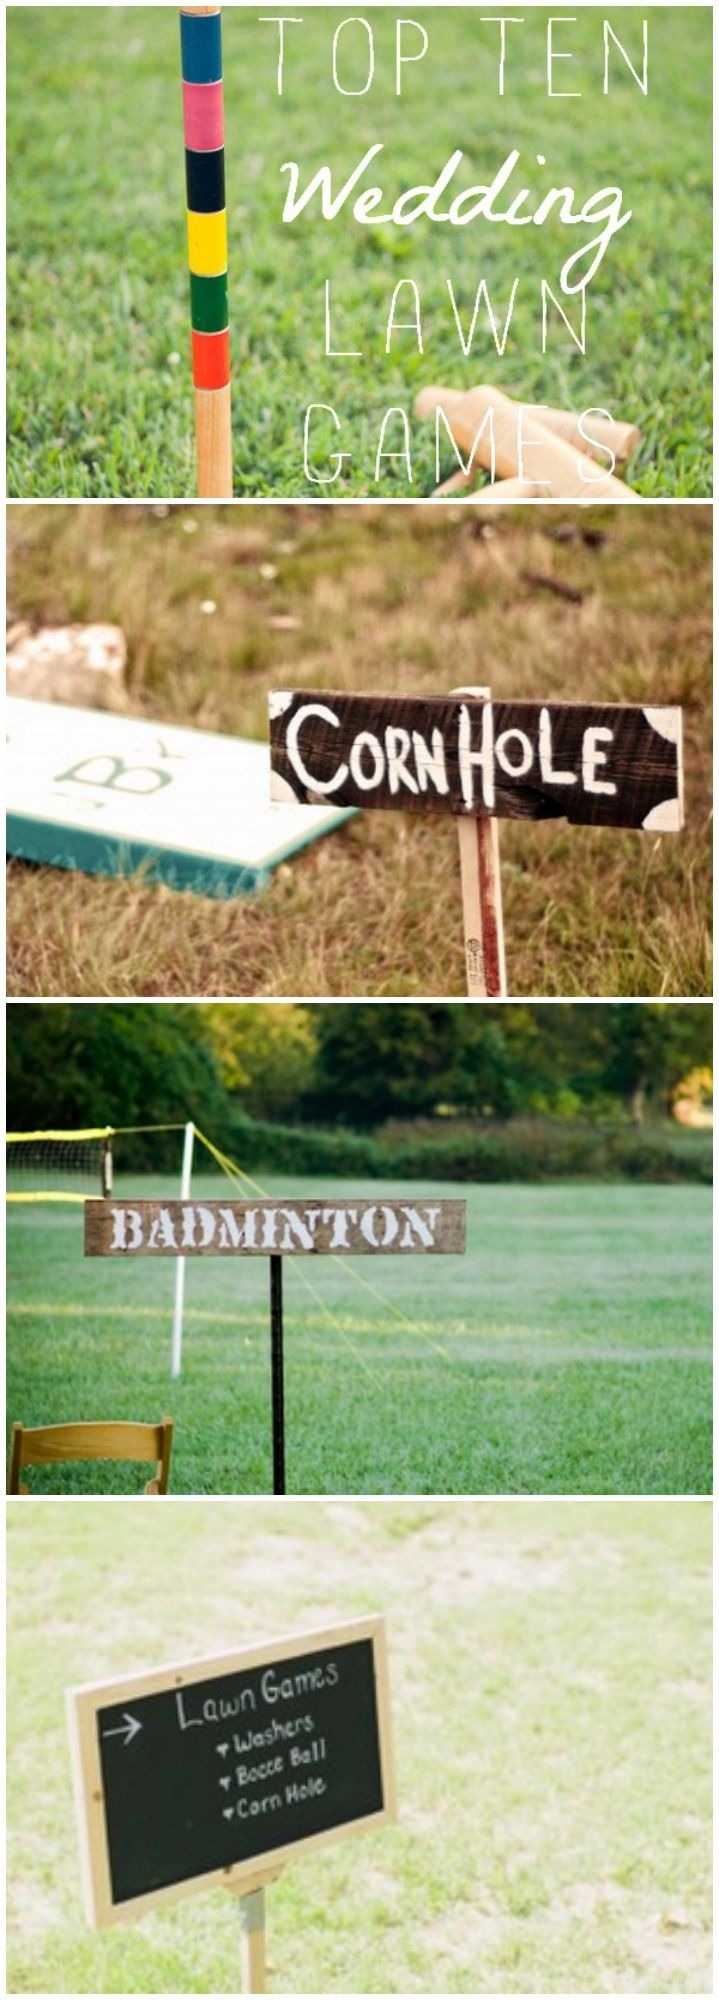 The Top 10 Wedding Lawn Games! These would even be great at any party as well! #lawngames #wedding